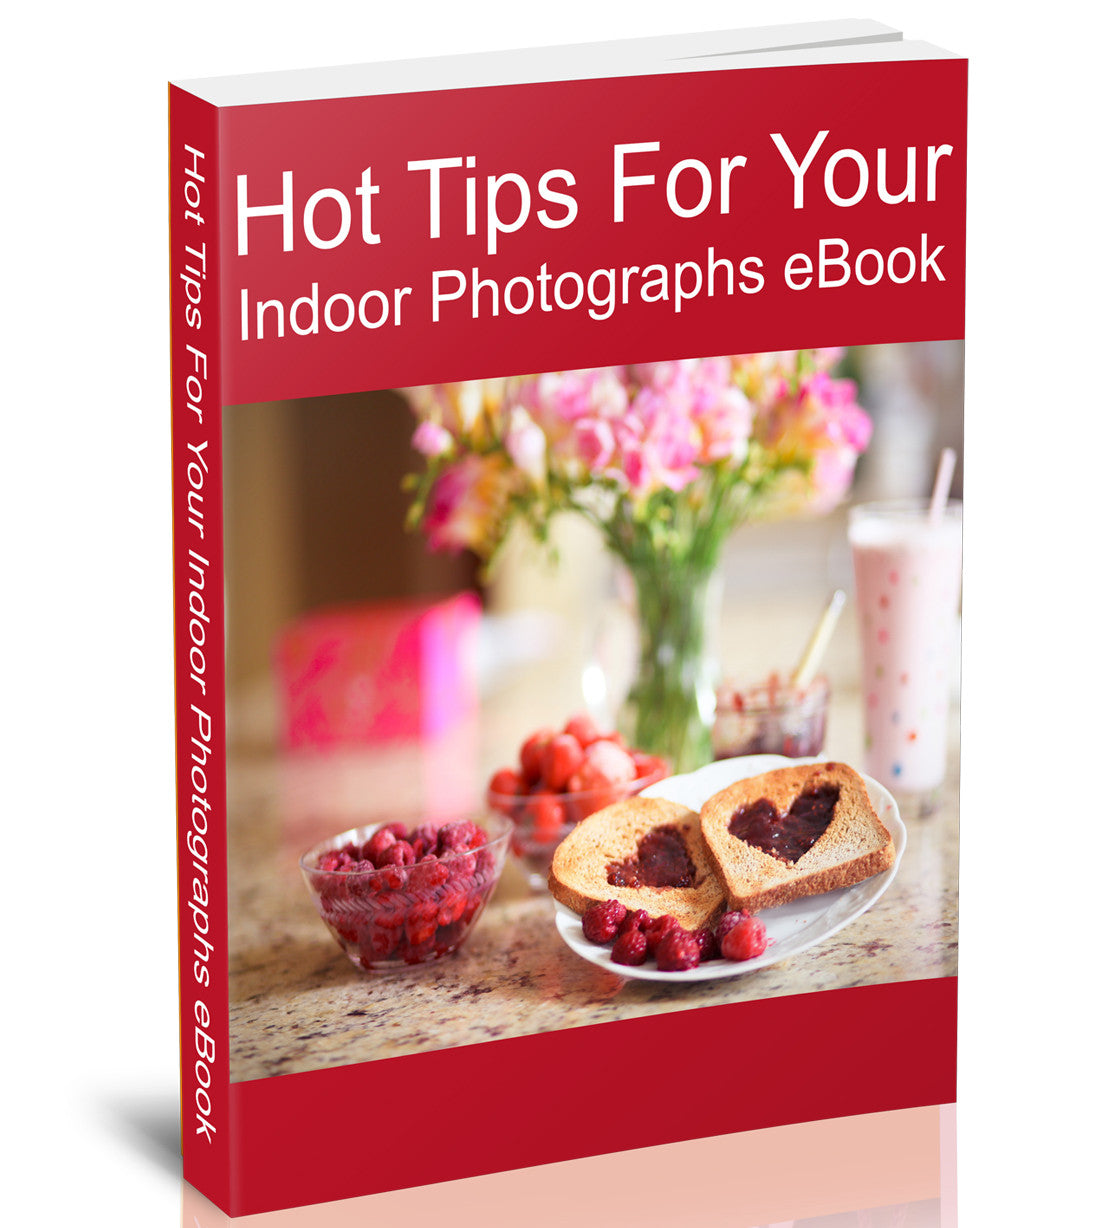 Hot Tips For Indoor Photographs eBook